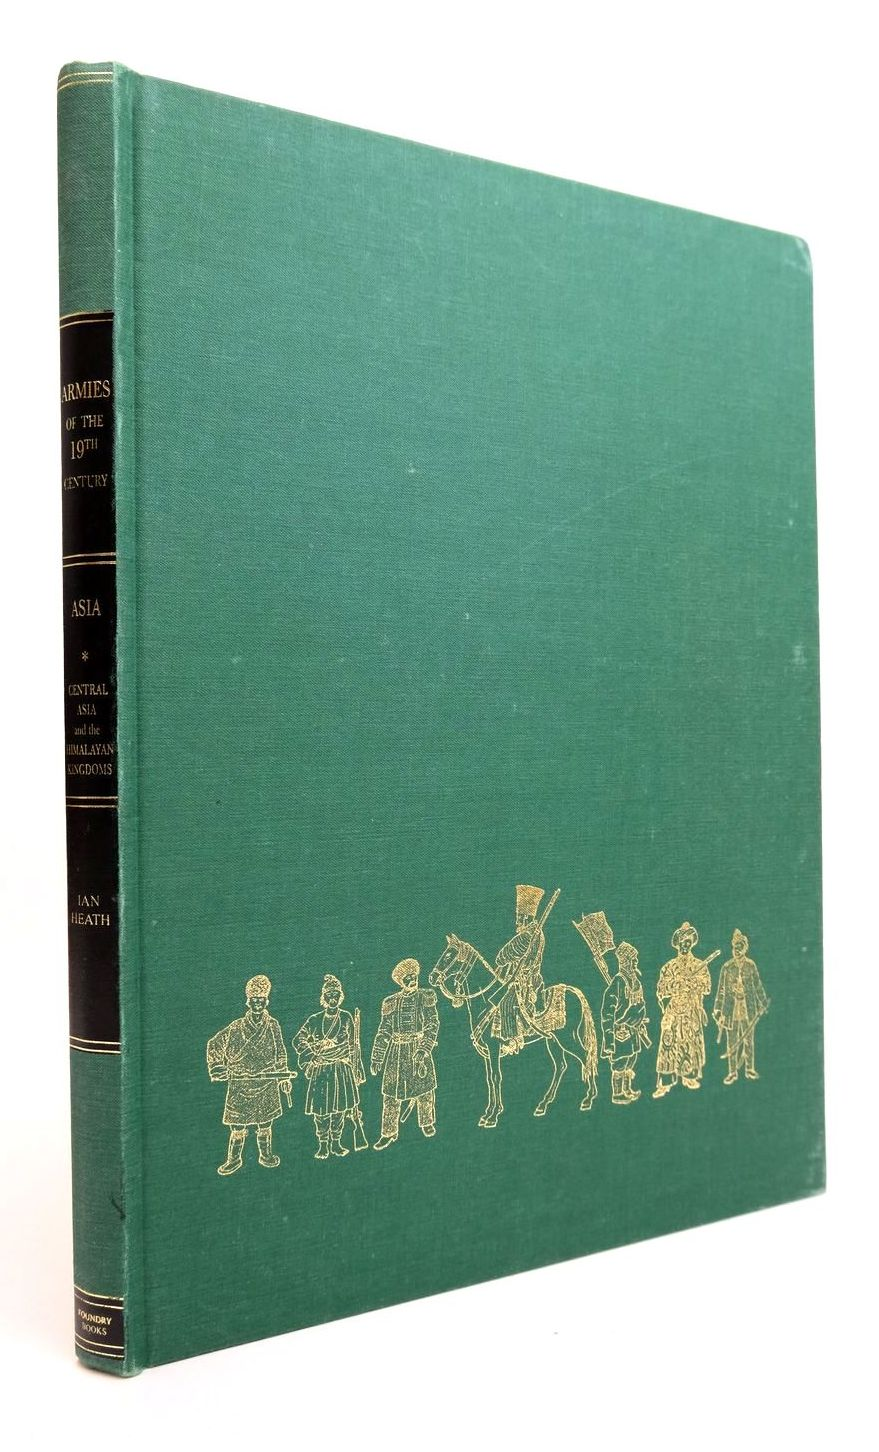 Photo of ARMIES OF THE NINETEENTH CENTURY: ASIA VOLUME 1 written by Heath, Ian published by Foundry Books (STOCK CODE: 2132454)  for sale by Stella & Rose's Books